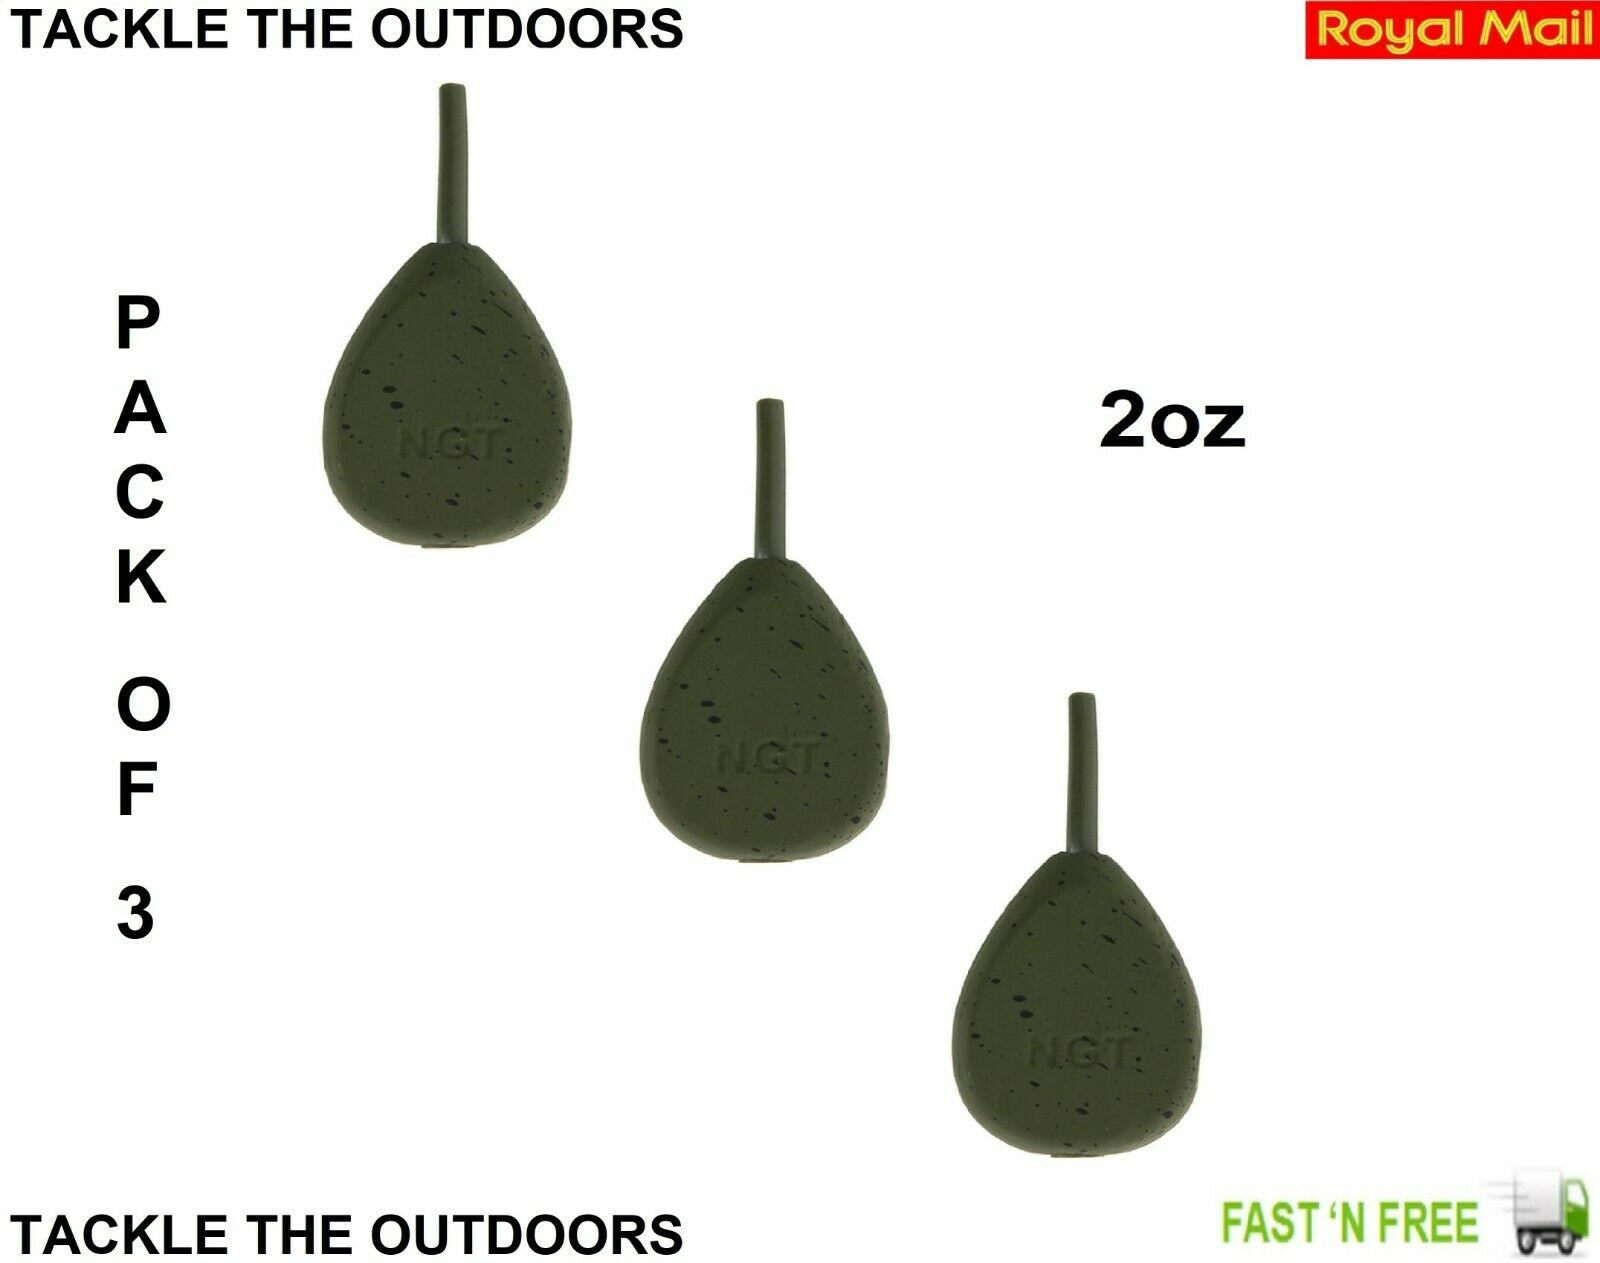 ngt flat pear lead weights 2.oz choose from x 1 to x 10